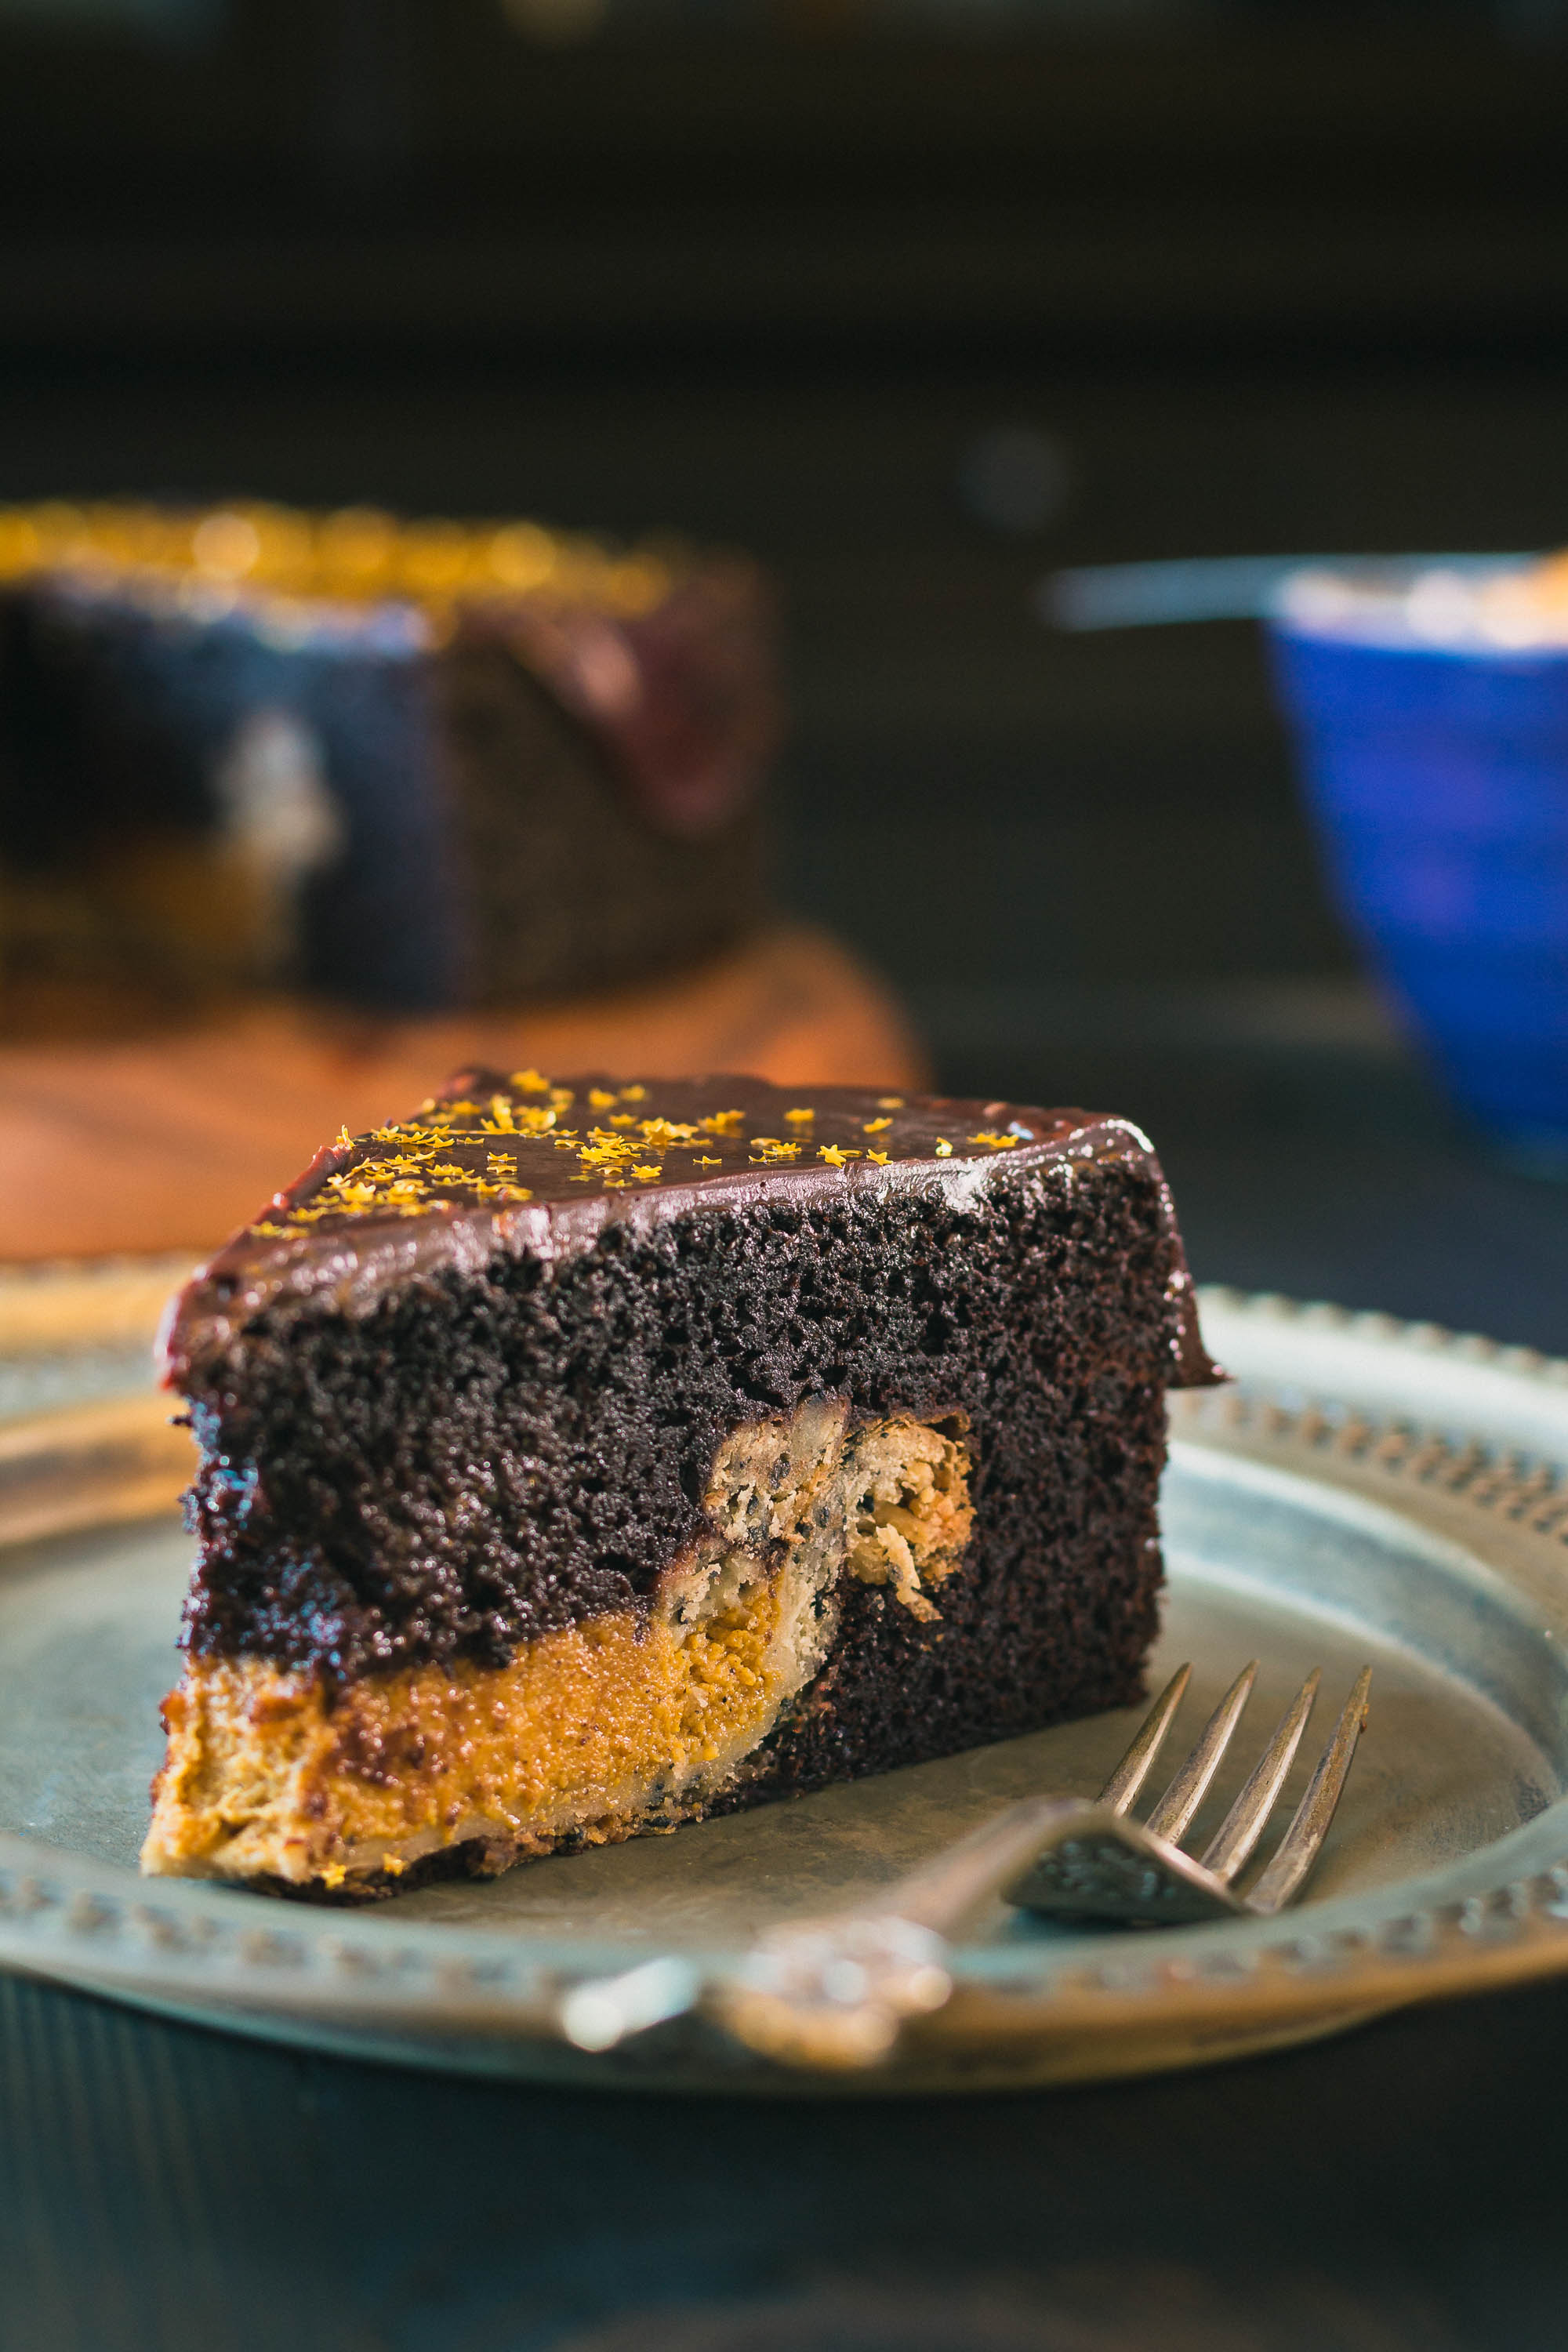 Chocolate Cake with Pumpkin Pie Surprise - Why choose between cake & pie when you can have this rich chocolate cake with a pumpkin pie inside - all smothered with a rich, chocolate ganache.